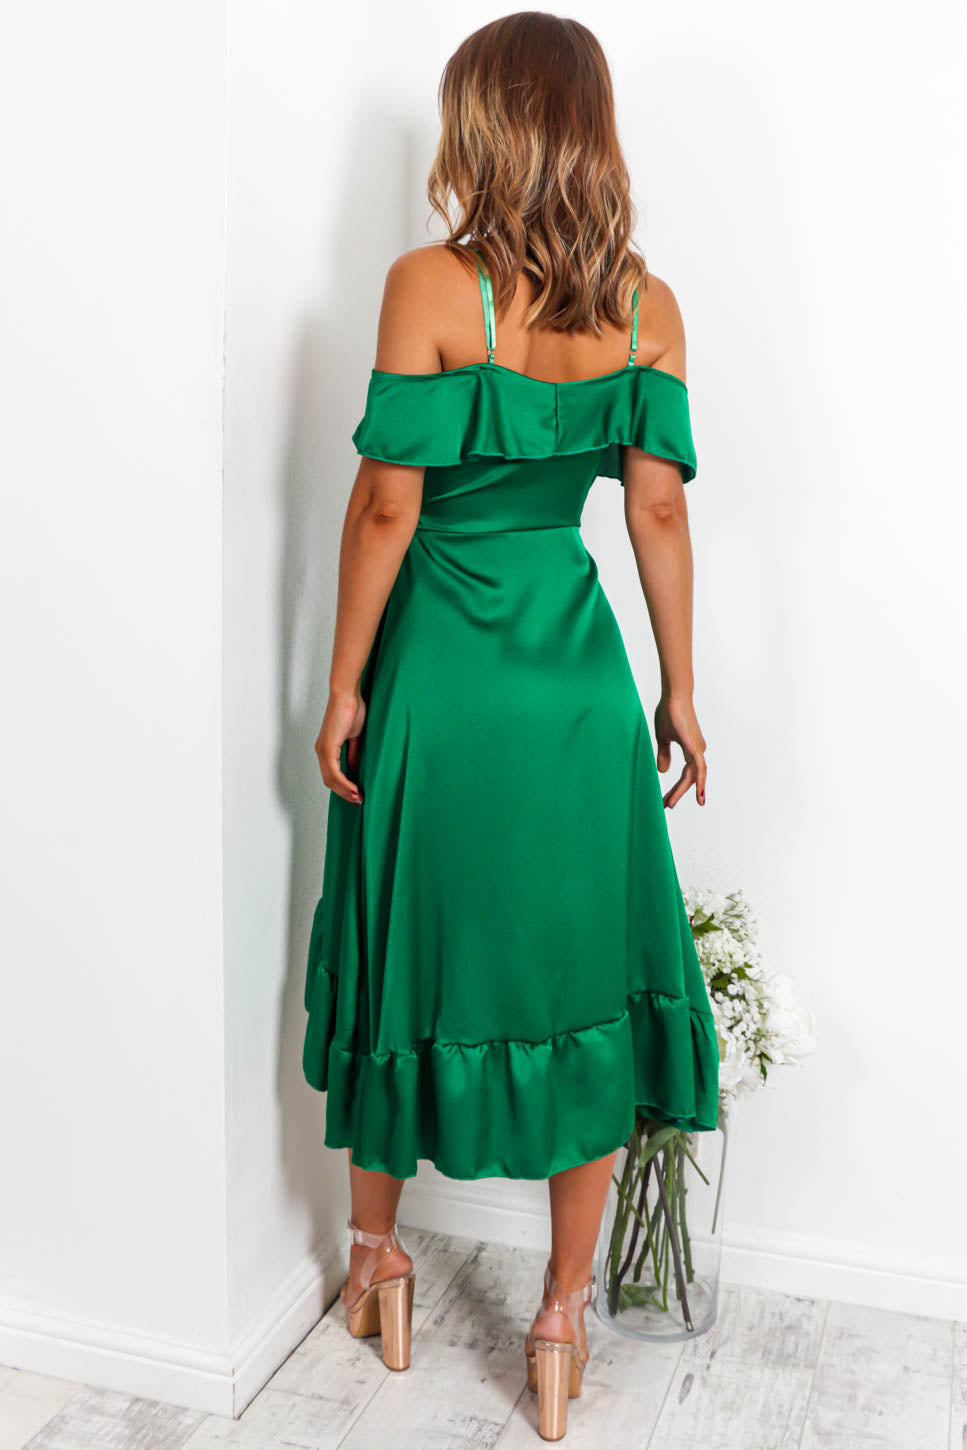 The Hot List - Midi Dress In GREEN/SATIN